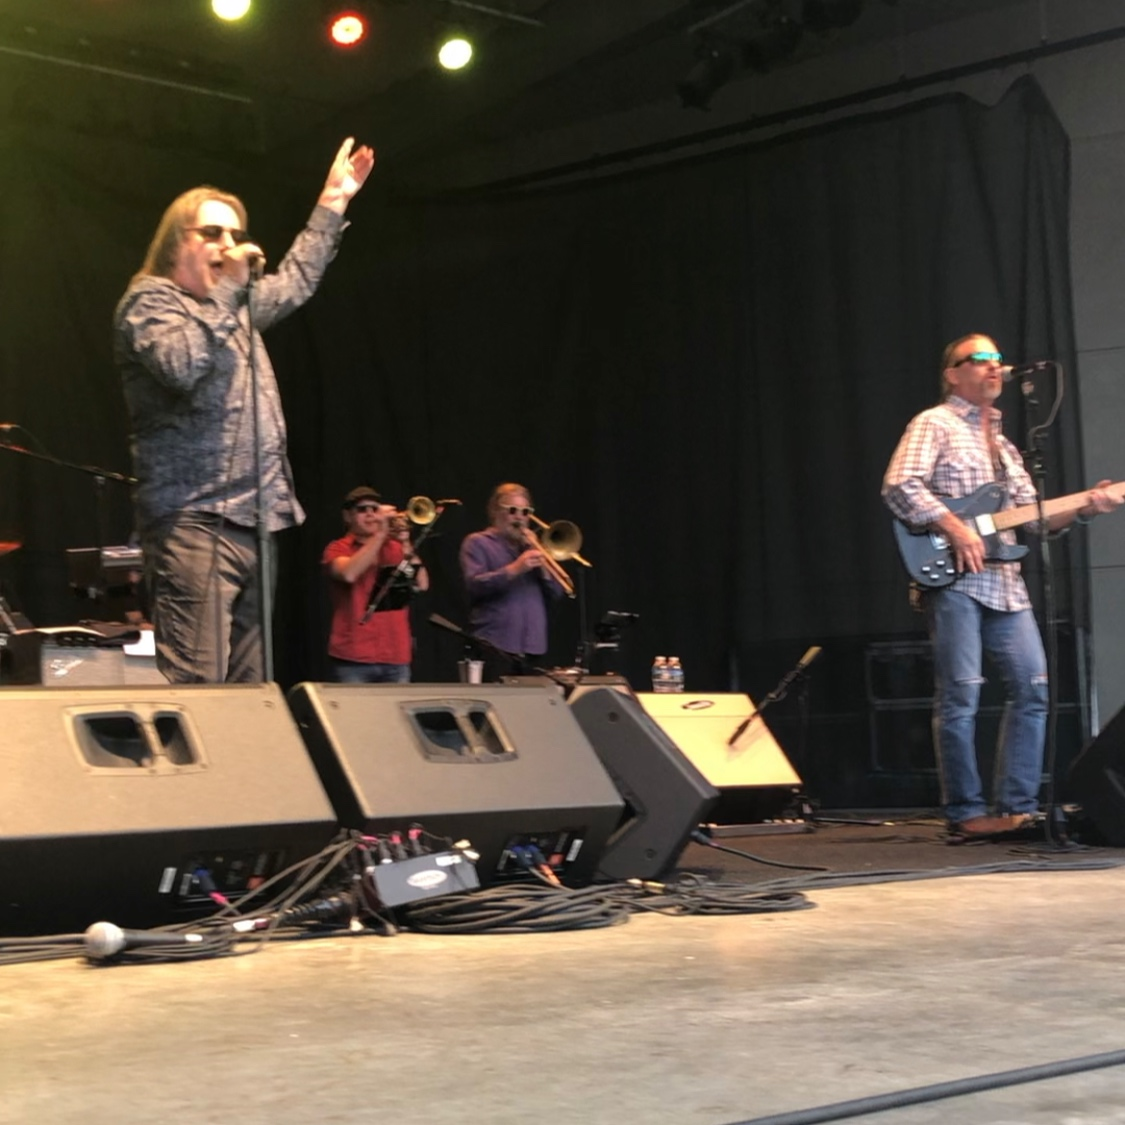 Southside Johnny fires up the crowd.